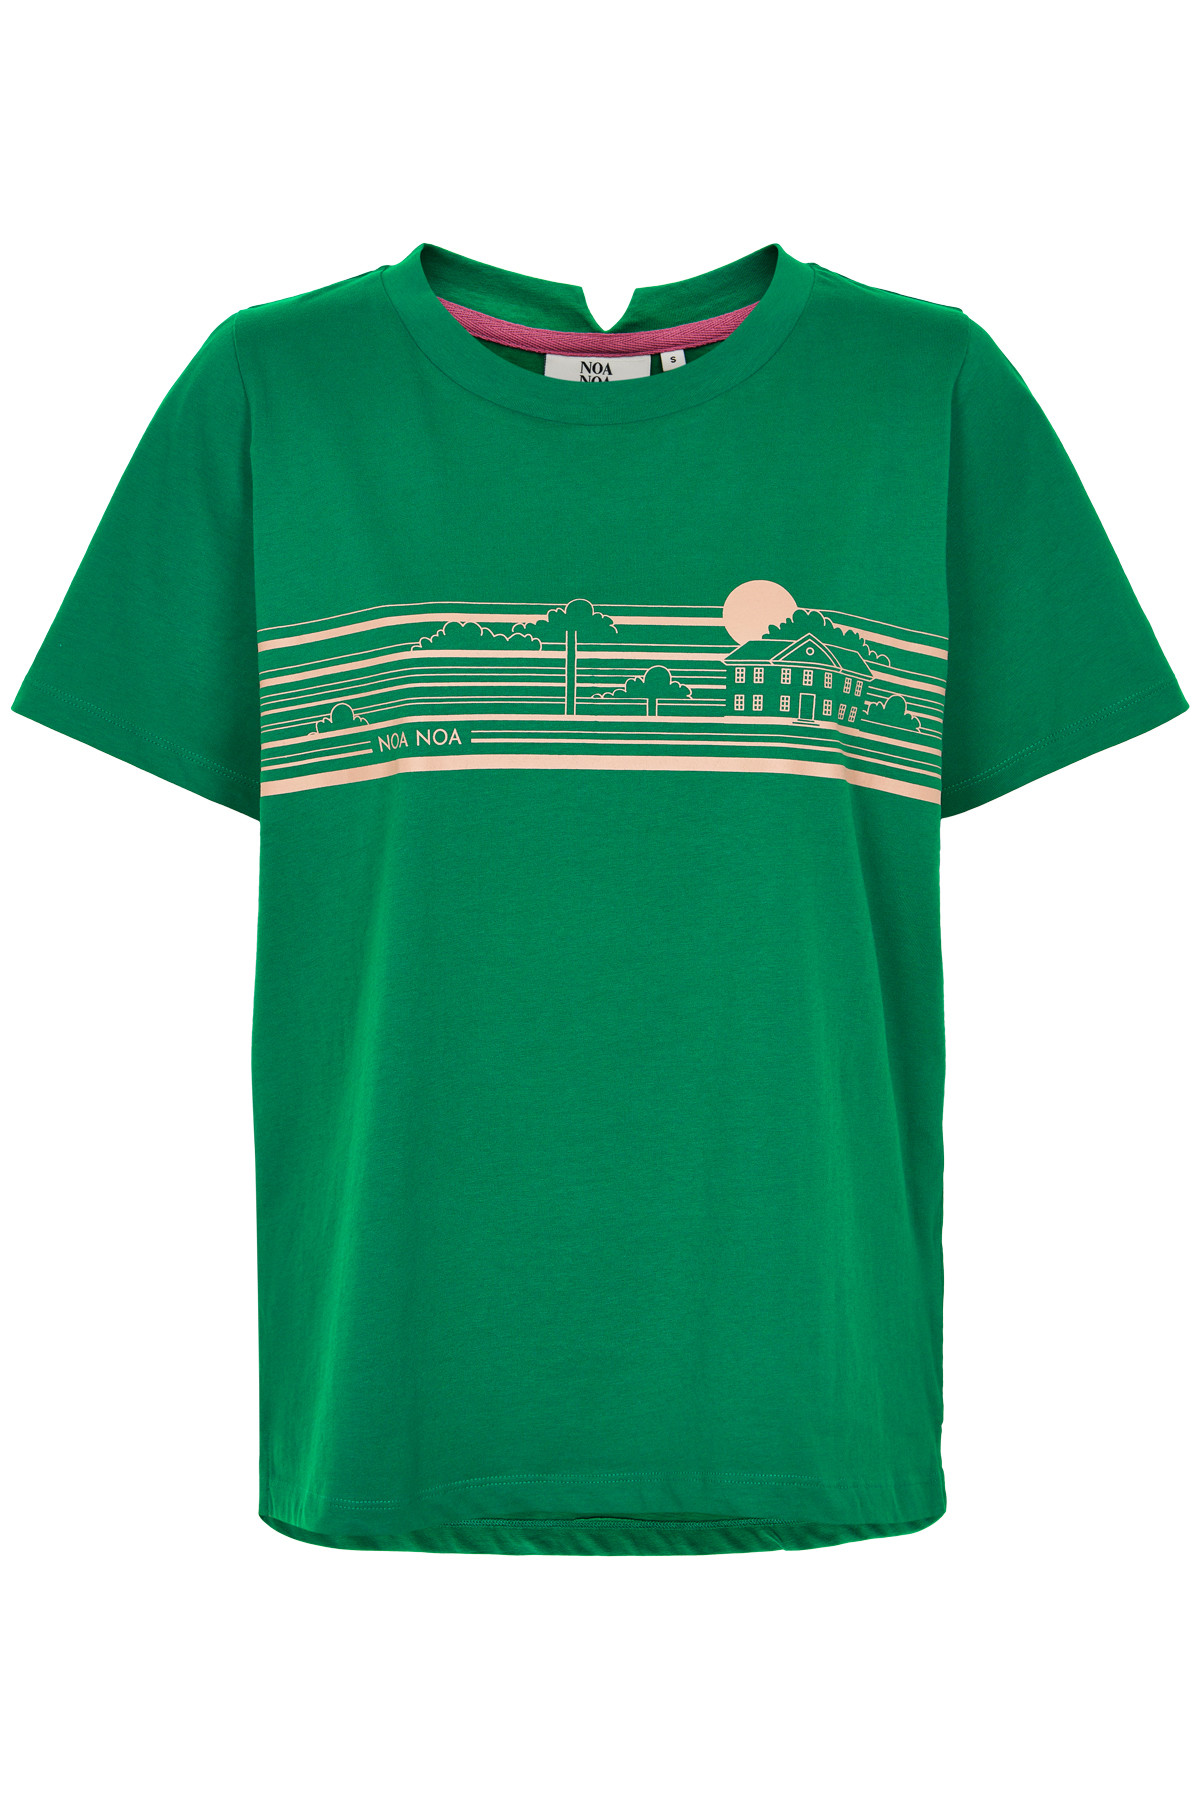 NOA NOA T-SHIRT 1-9849-1 00467 (Green, XS)